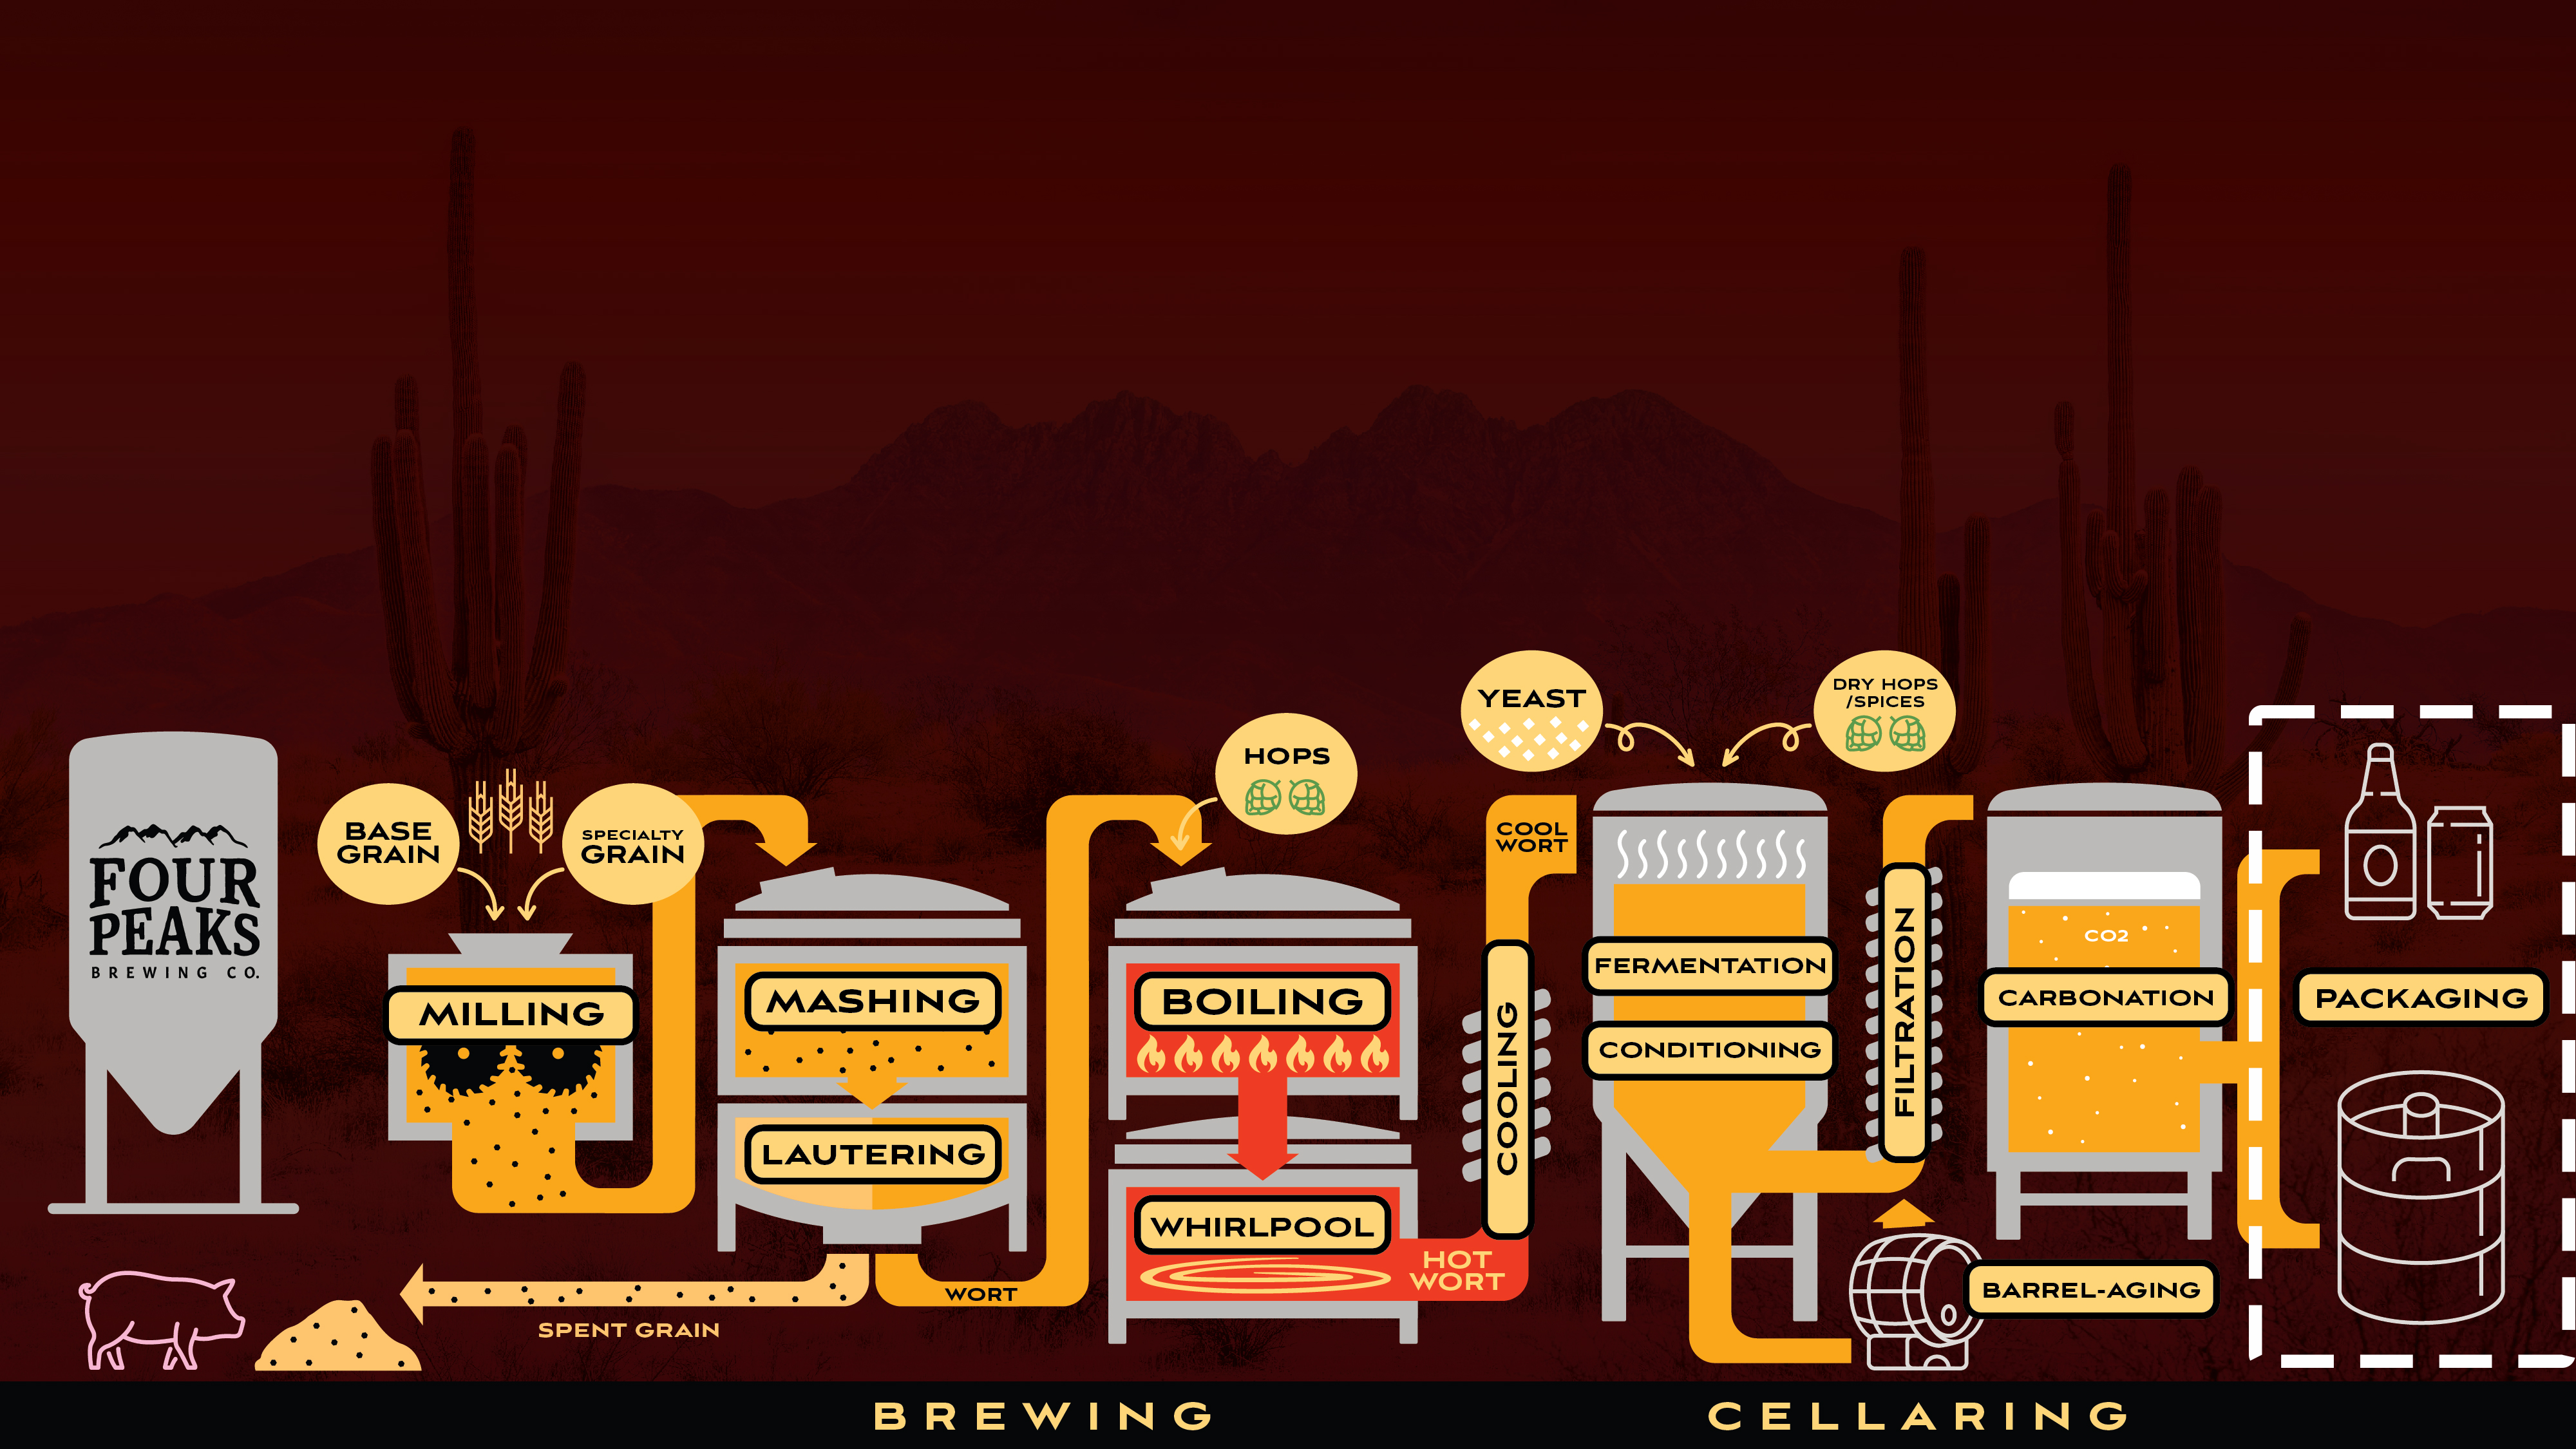 Brewing Process – Packaging